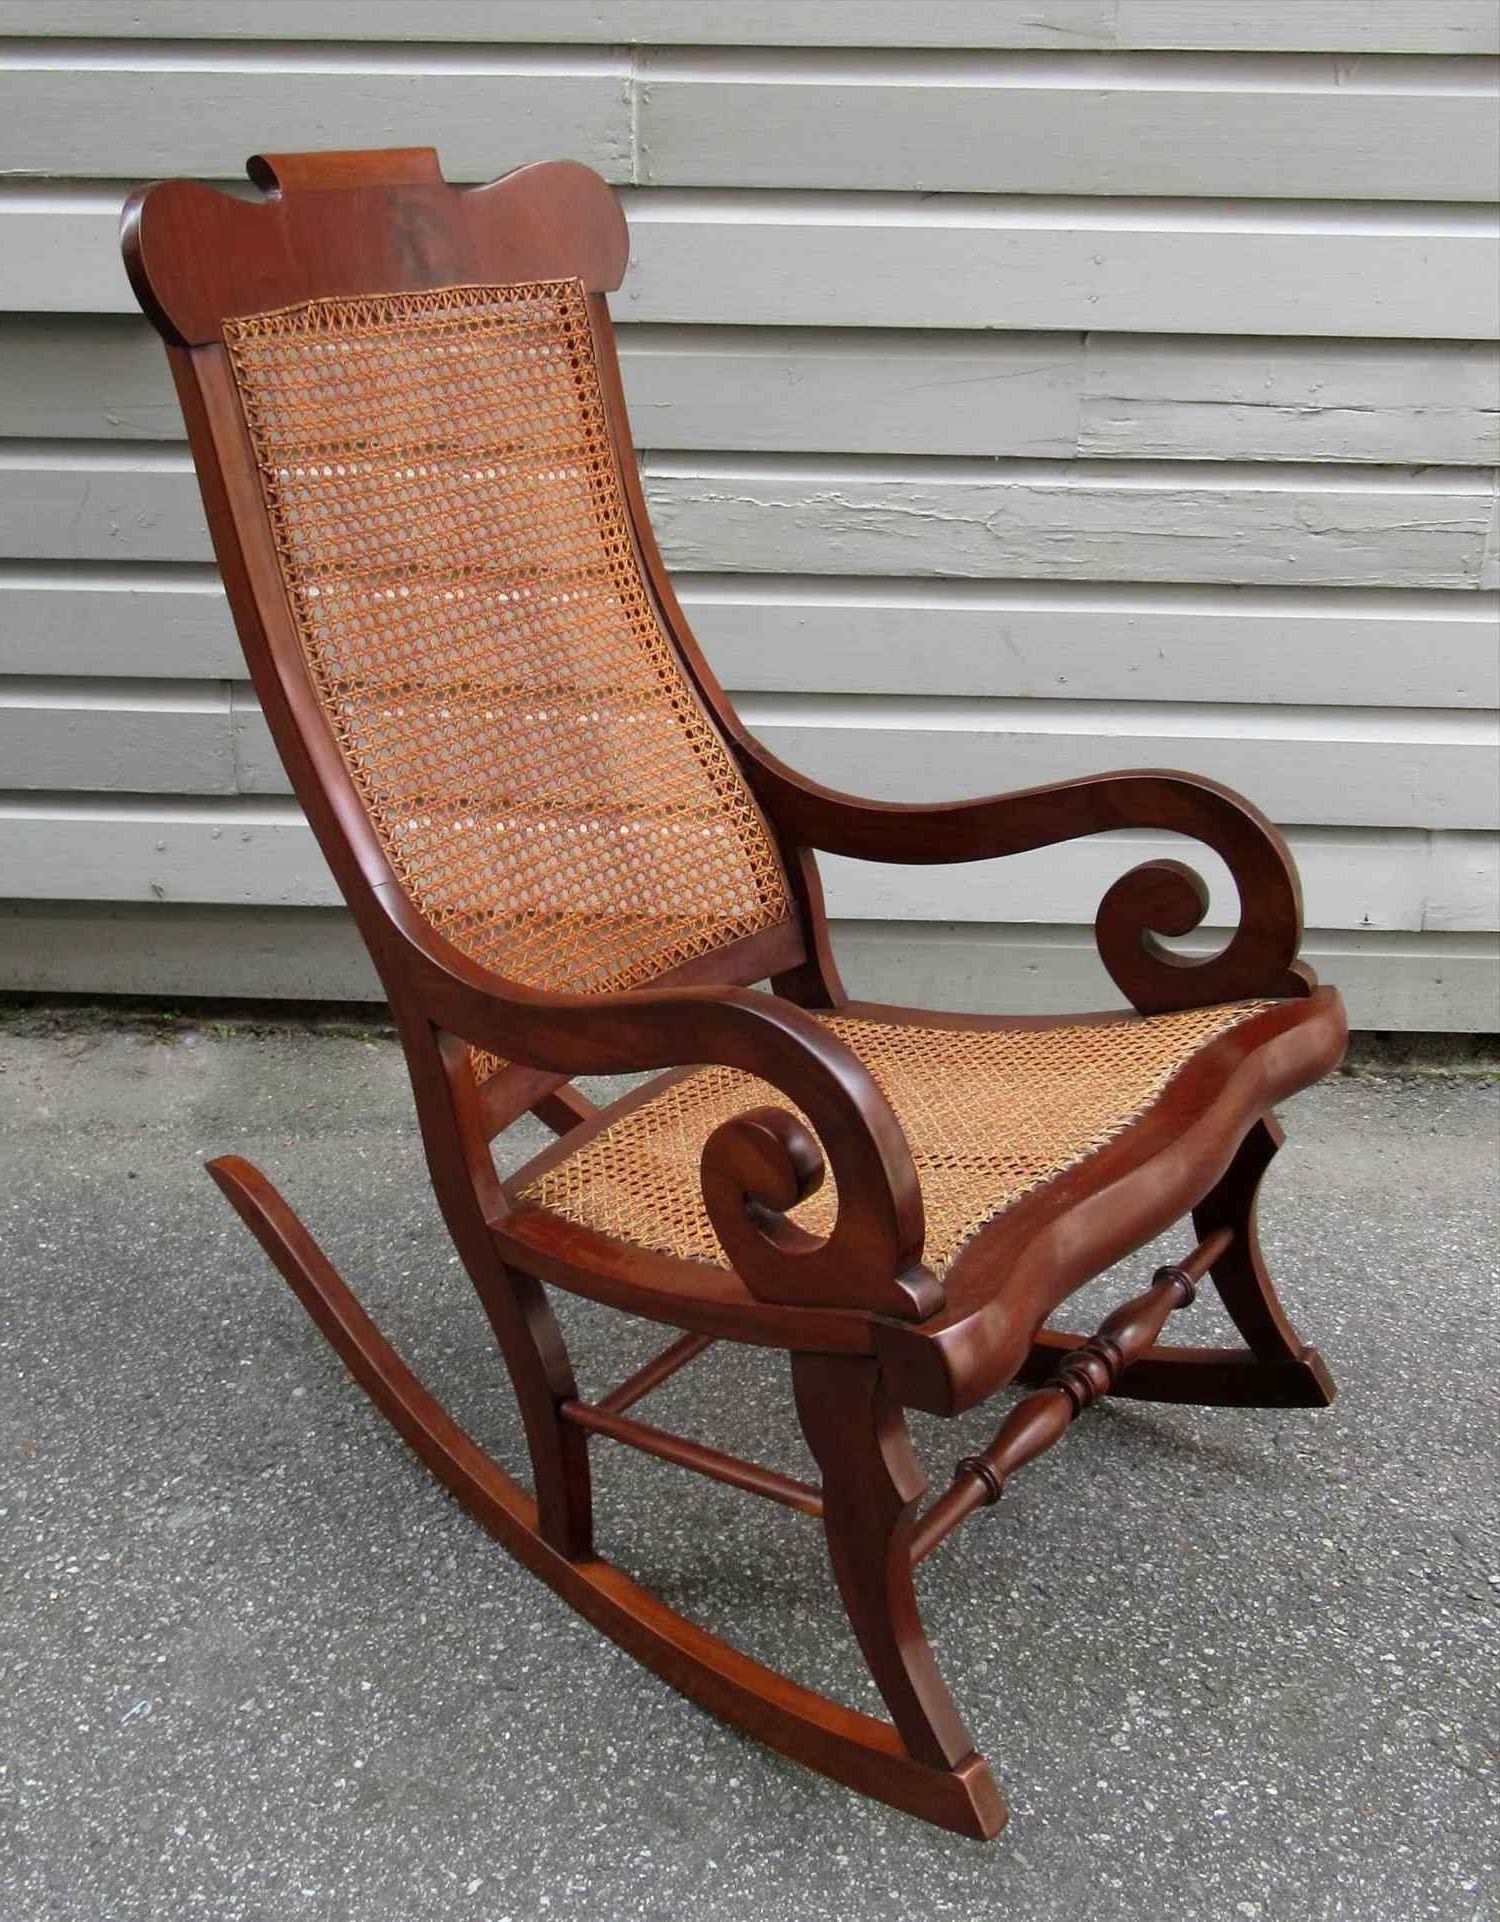 Antique Wicker Rocking Chairs Inside Most Recent Antique Cane Rocking Chair For Sale – Image Antique And Candle (View 9 of 15)